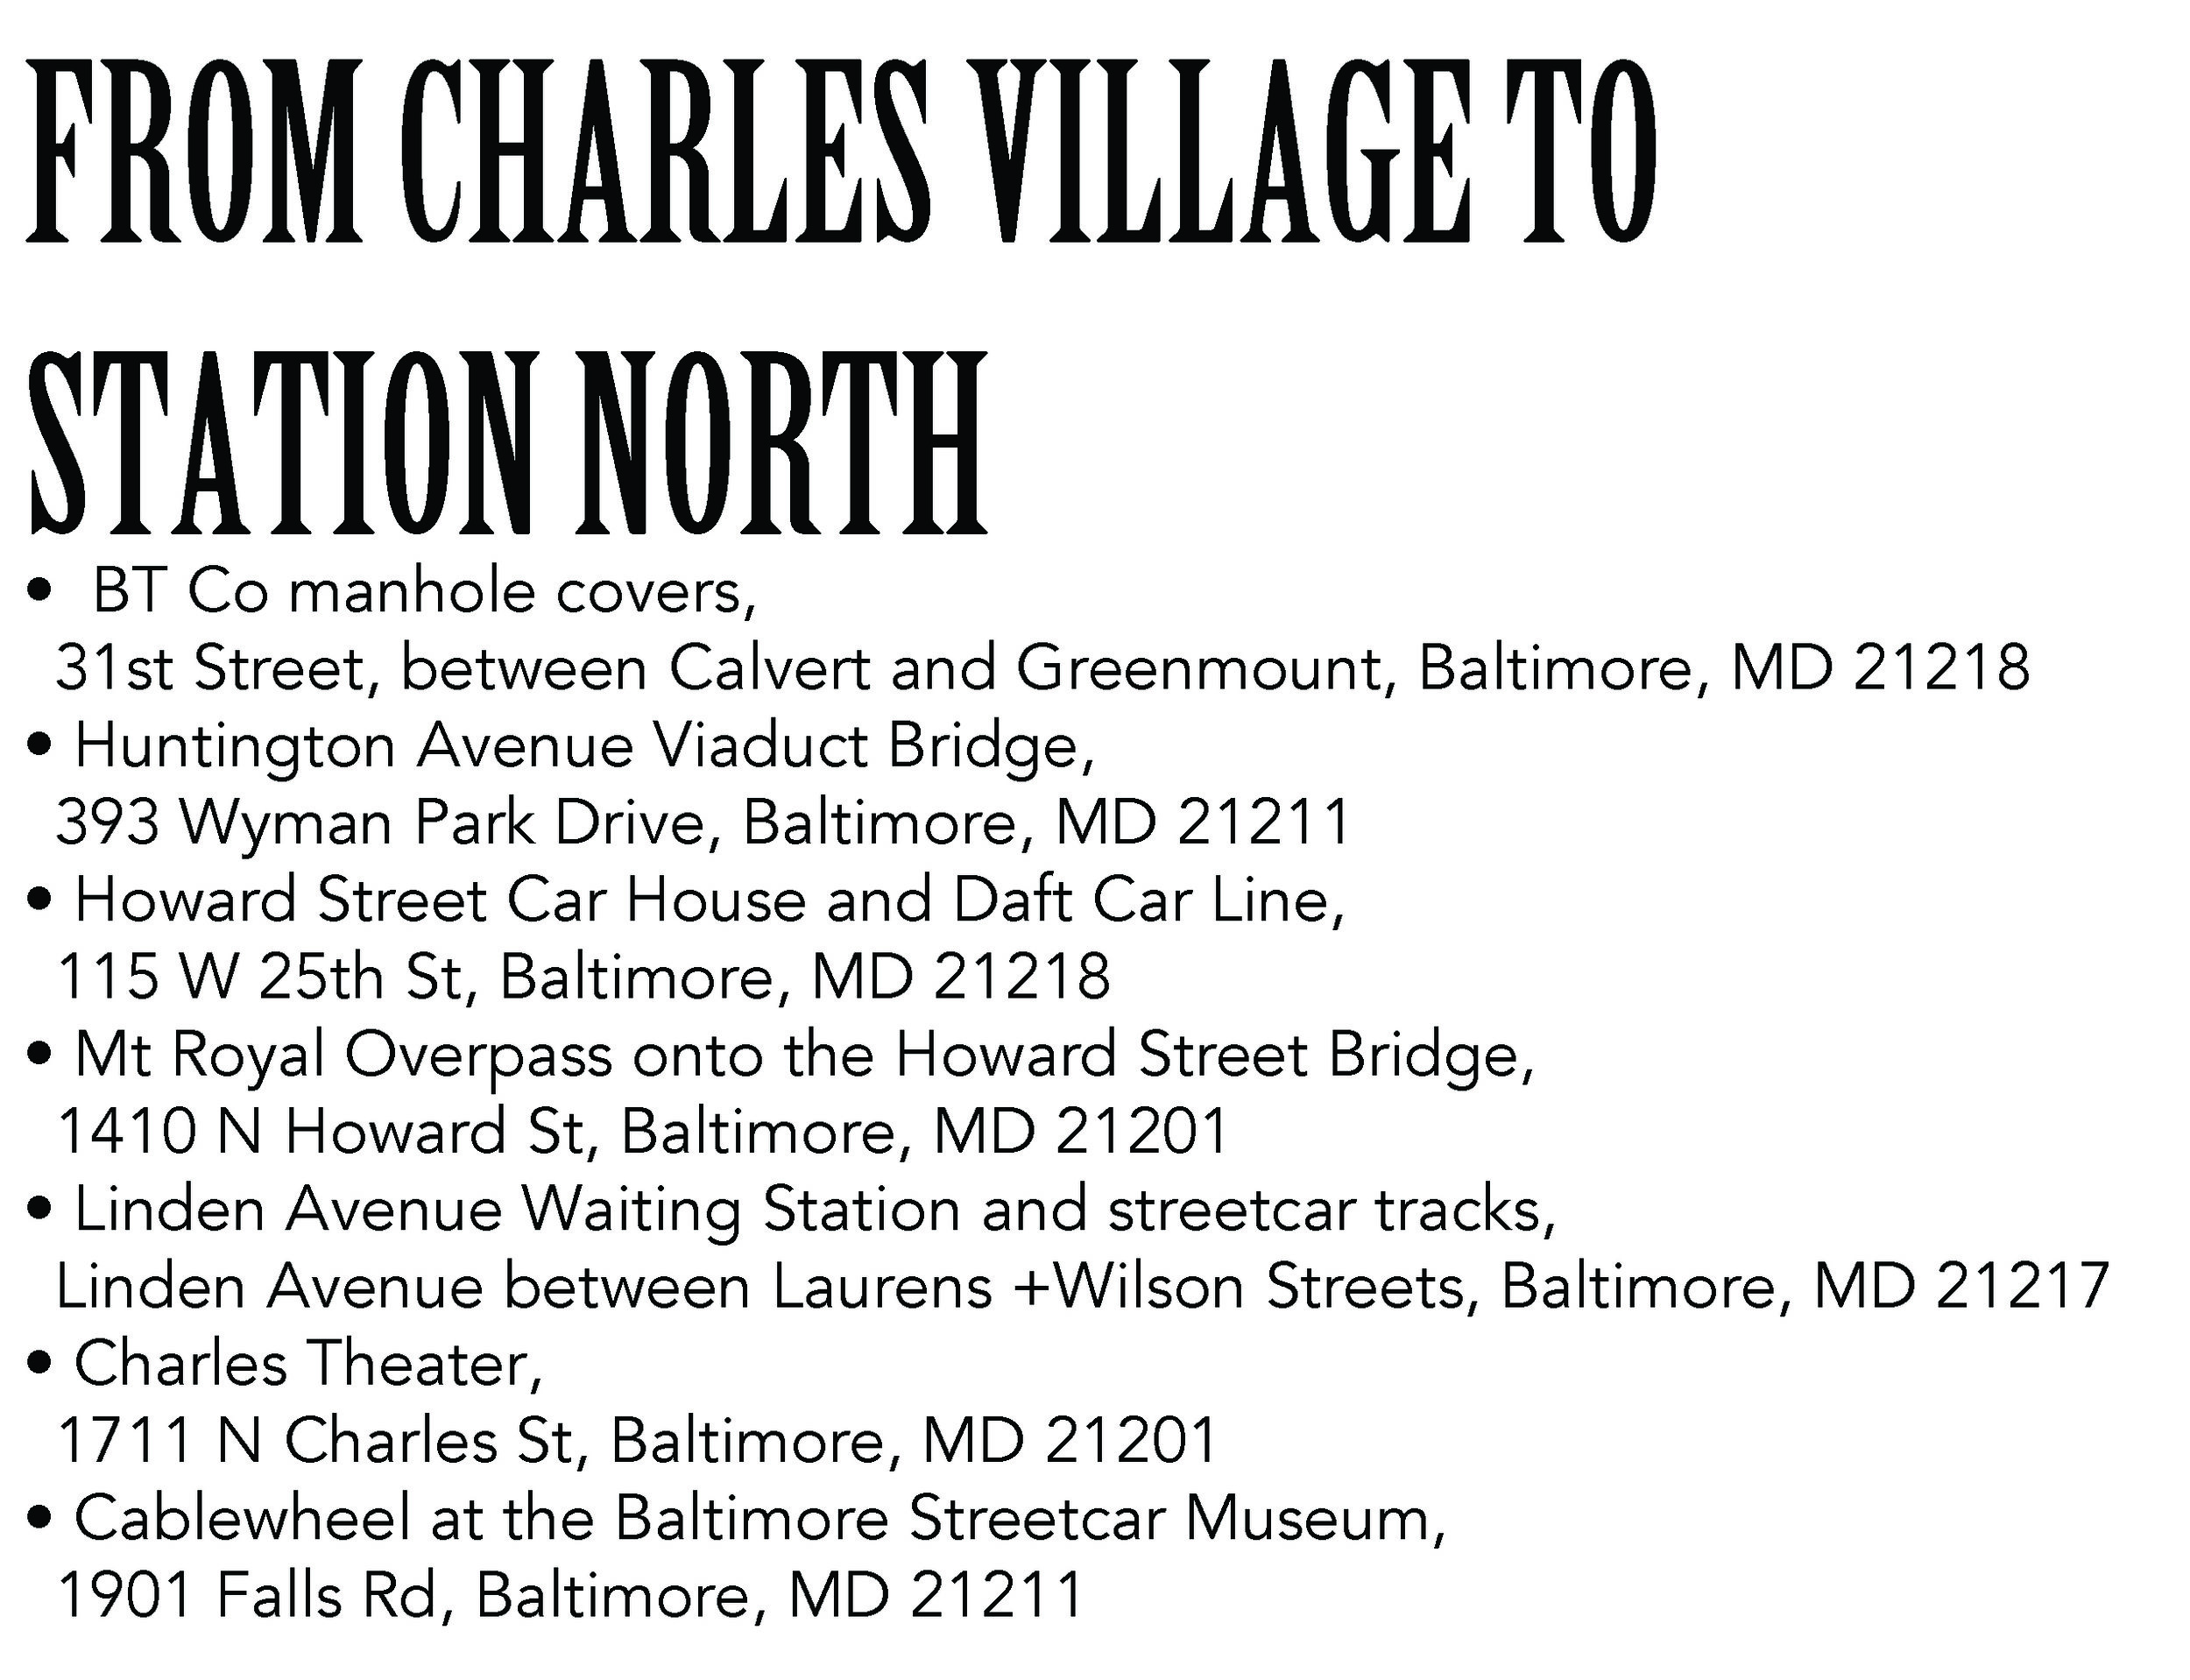 From Charles Village to Station North.jpg